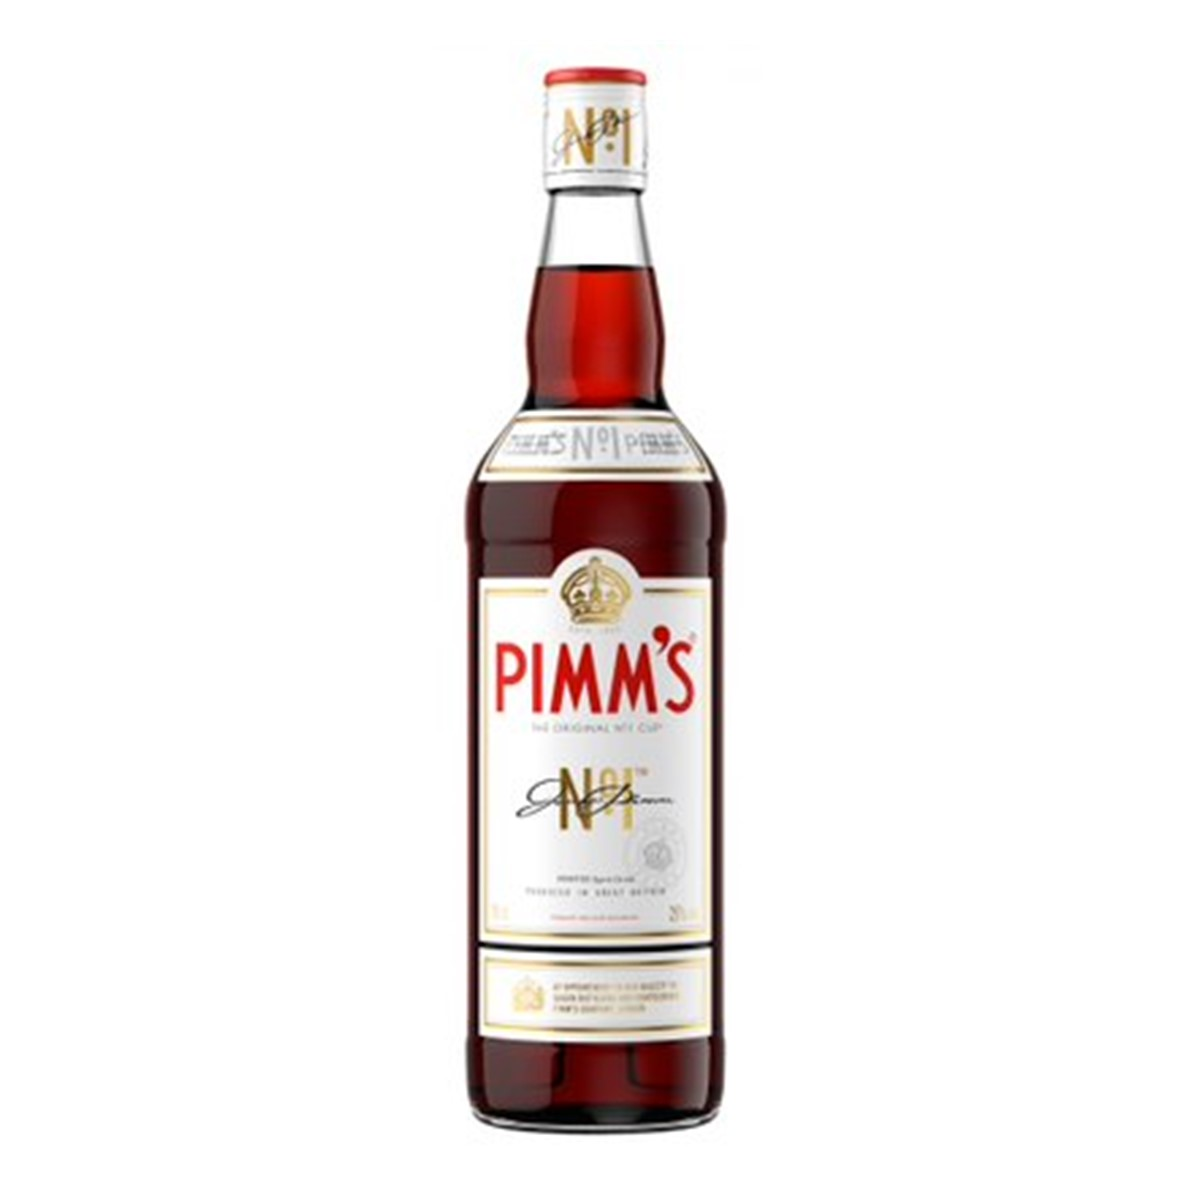 Pimm's No. 1 Cup - 70cl bottle